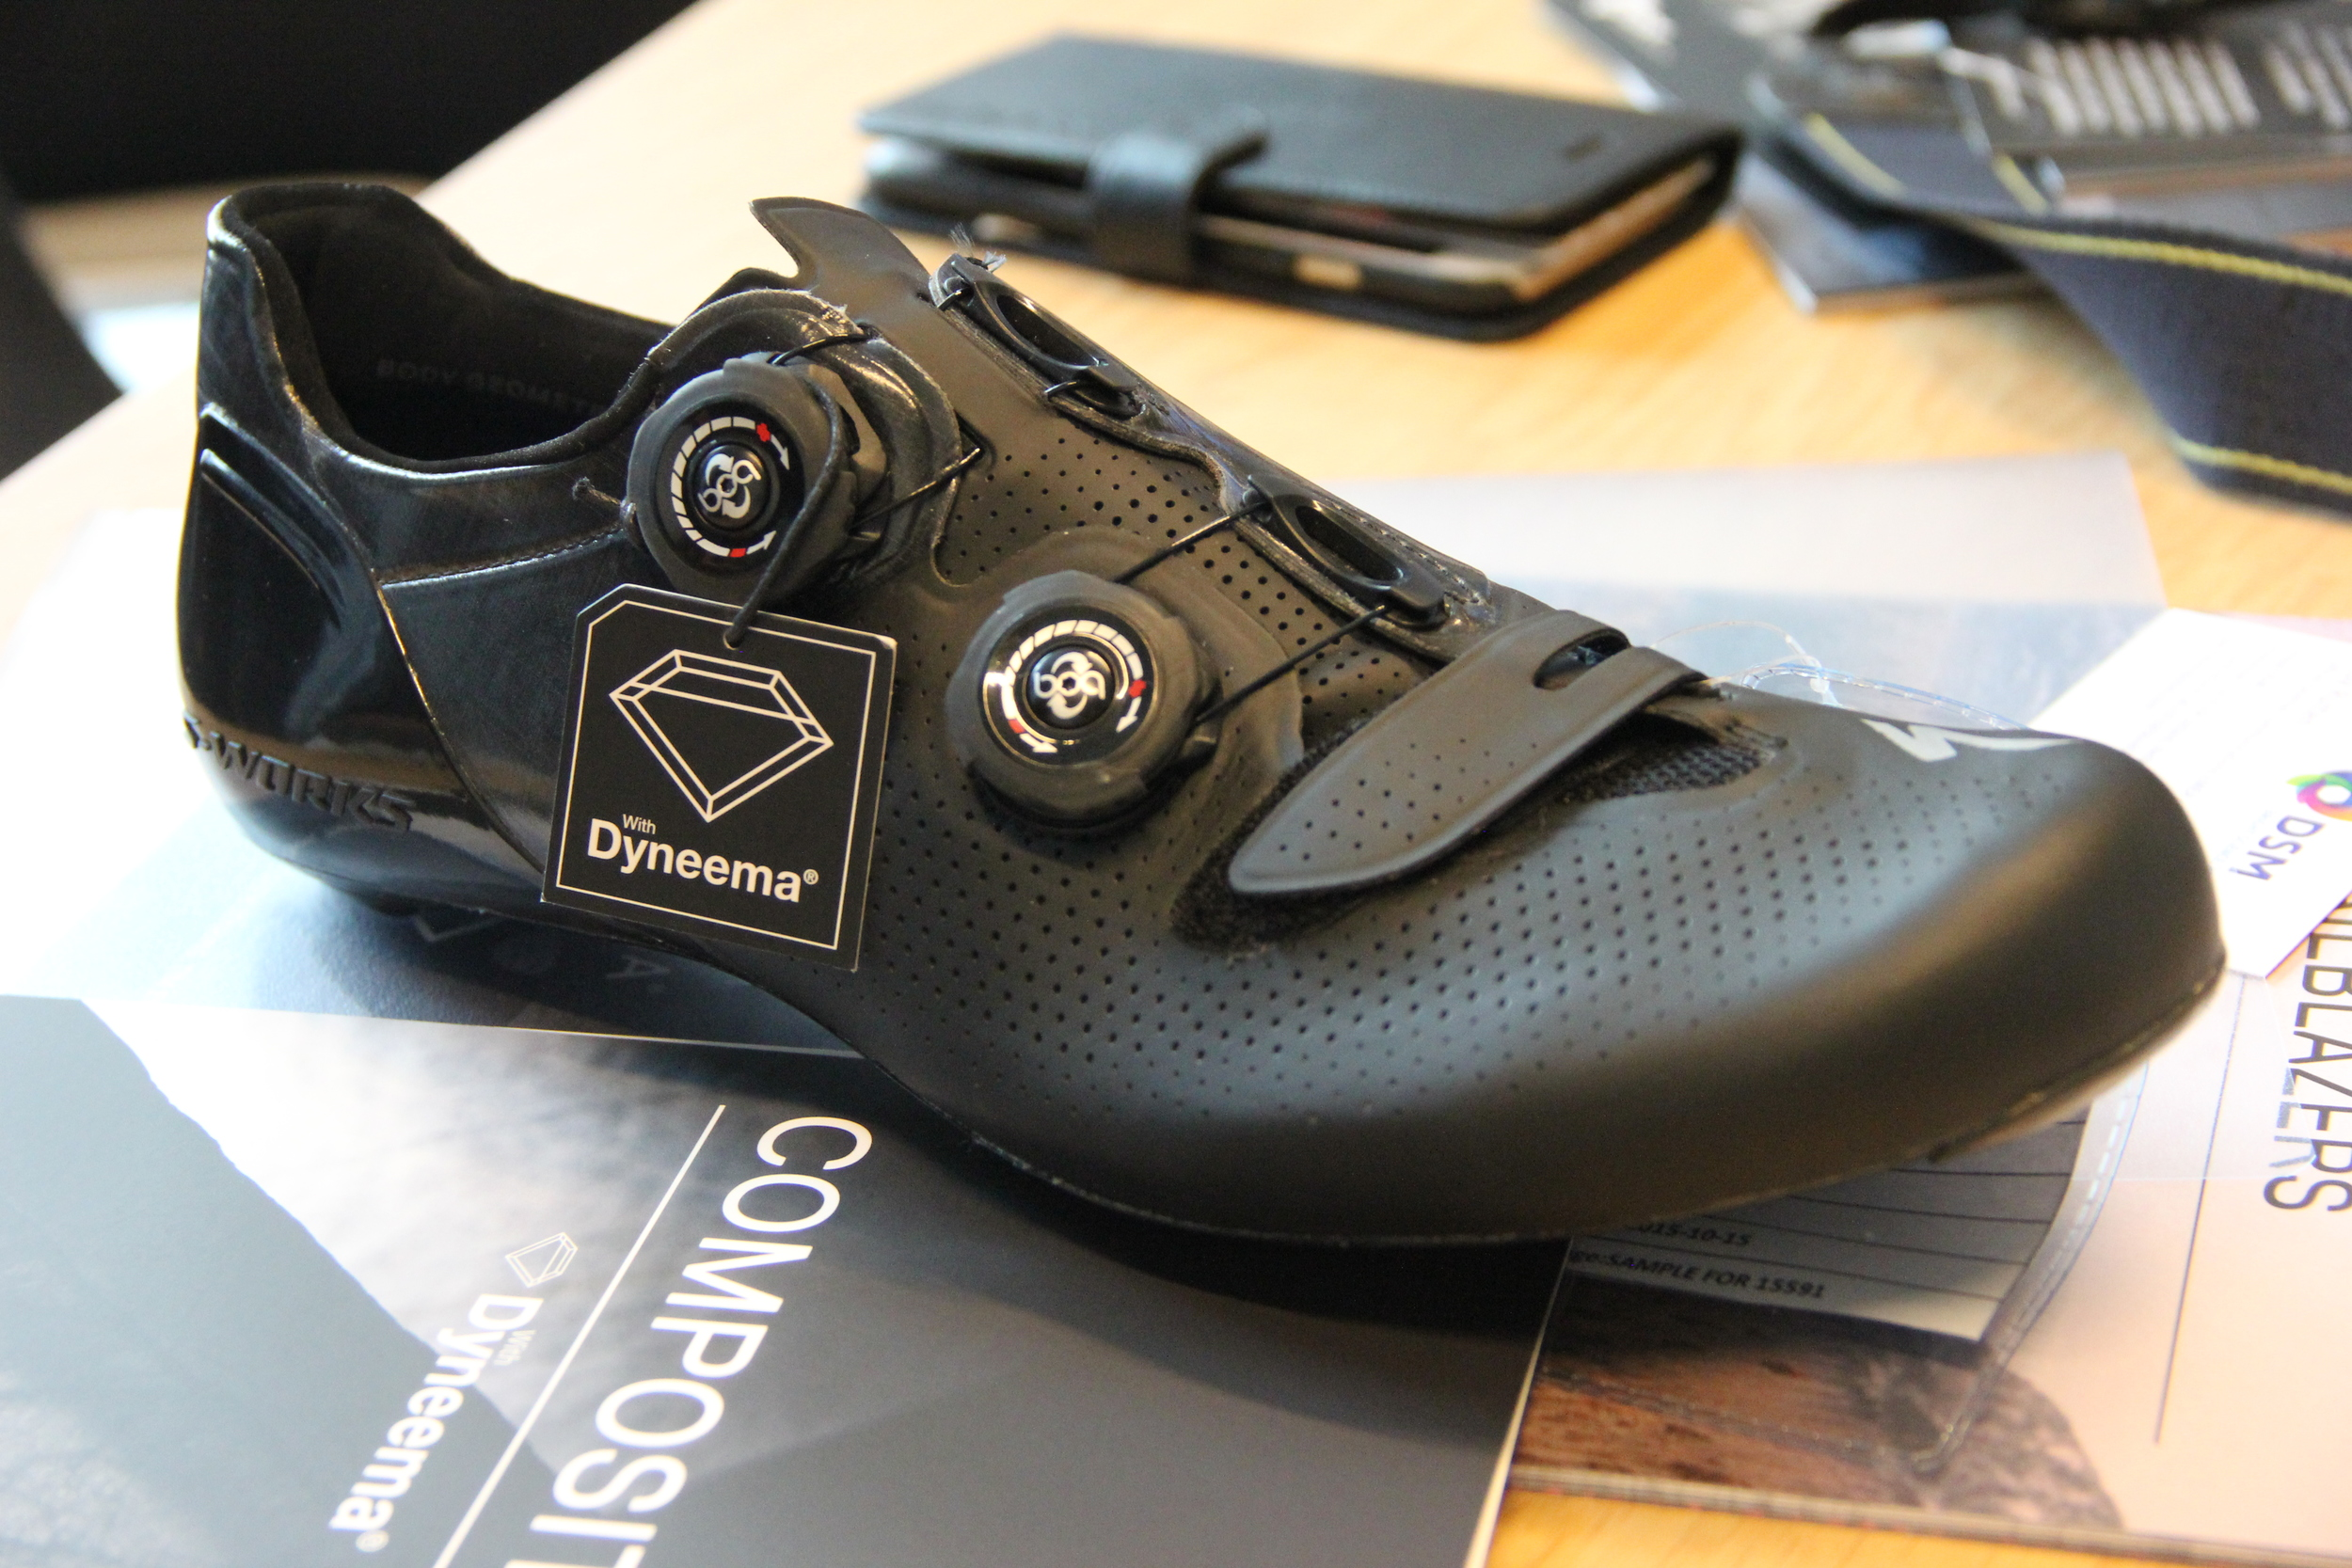 Dyneema have developed a racing shoe in partnership with Specialized